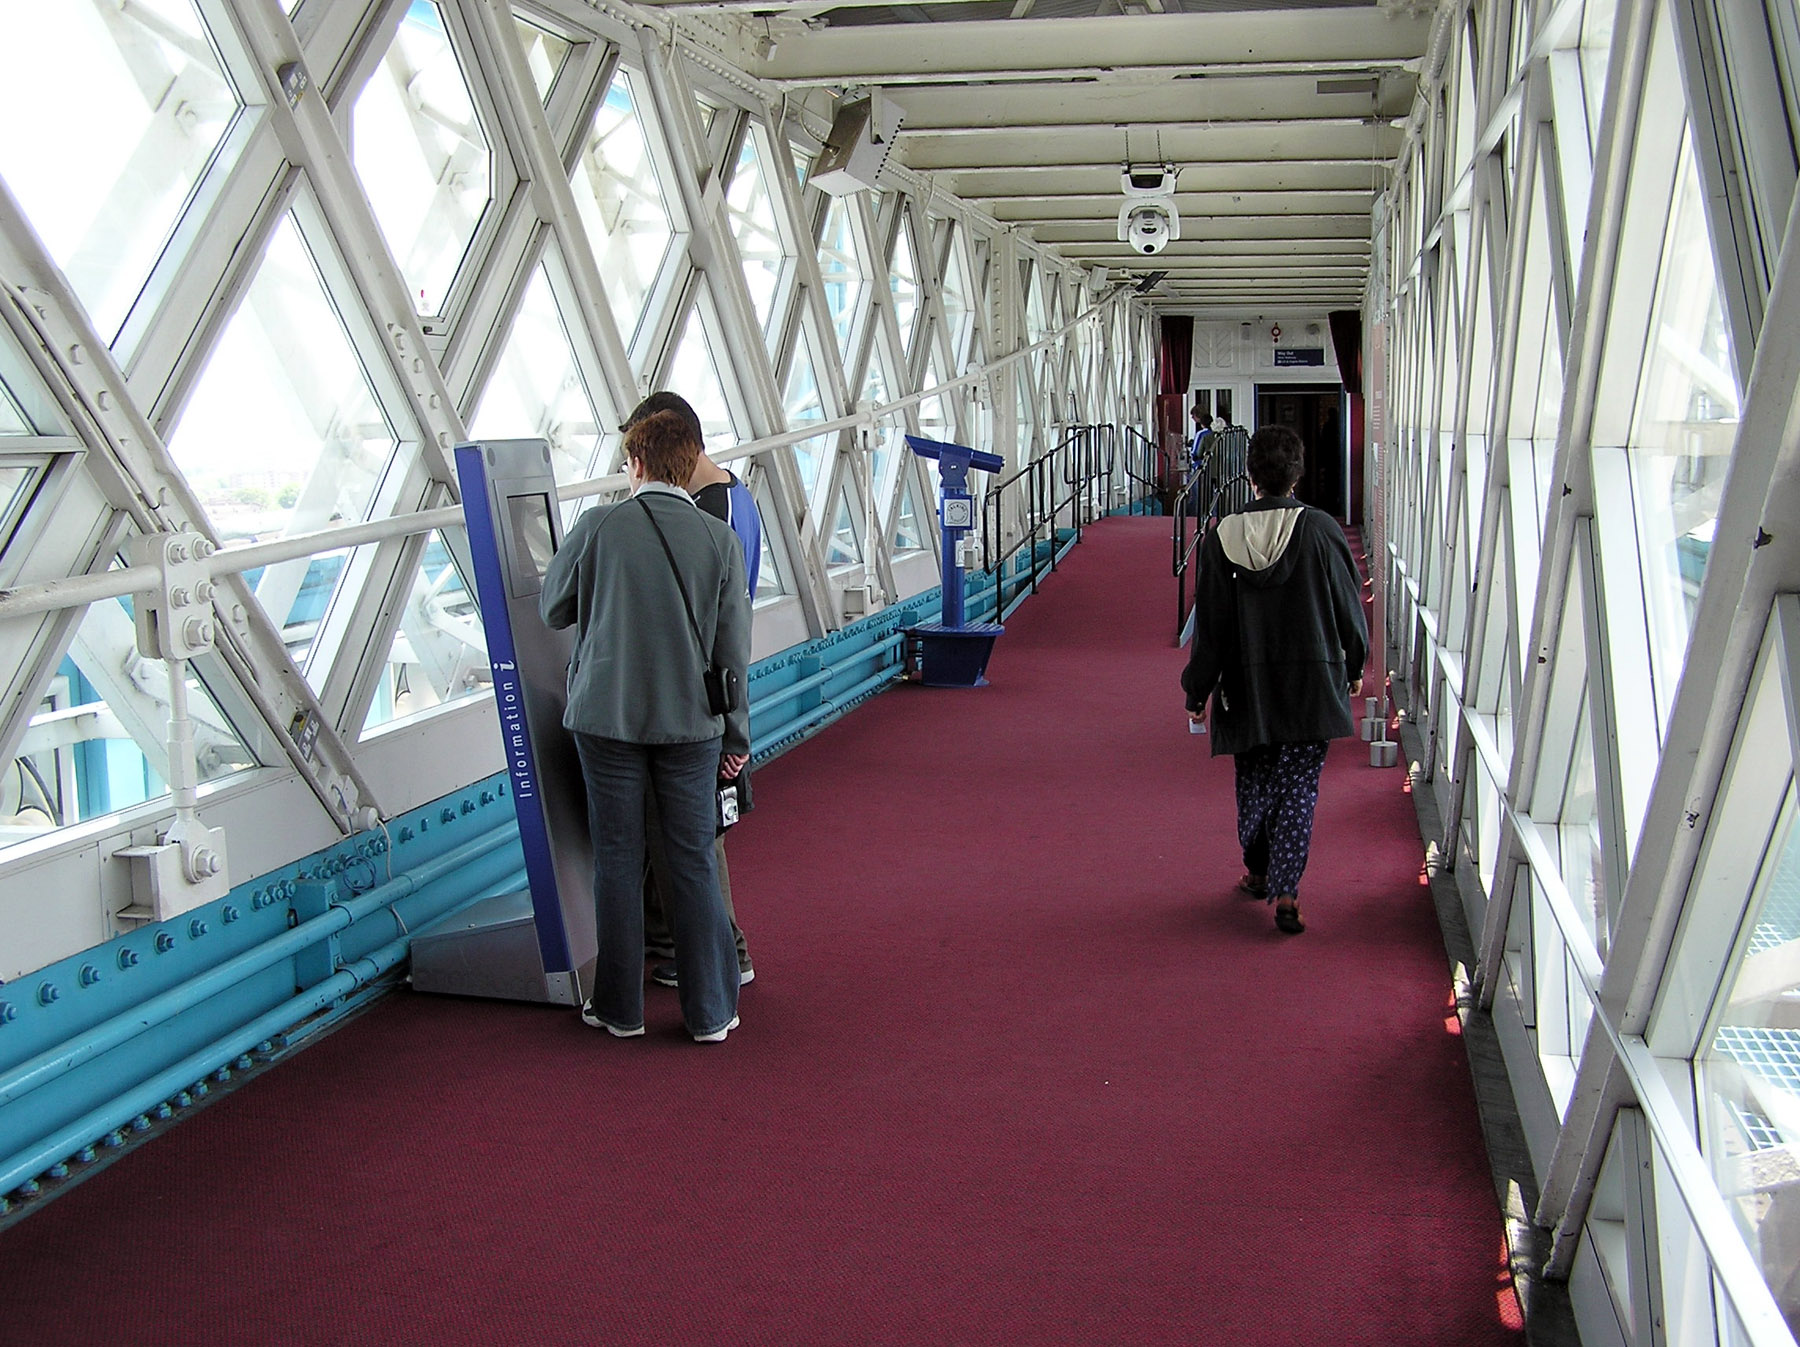 Interior of high-level walkway (used as an exhibition space)